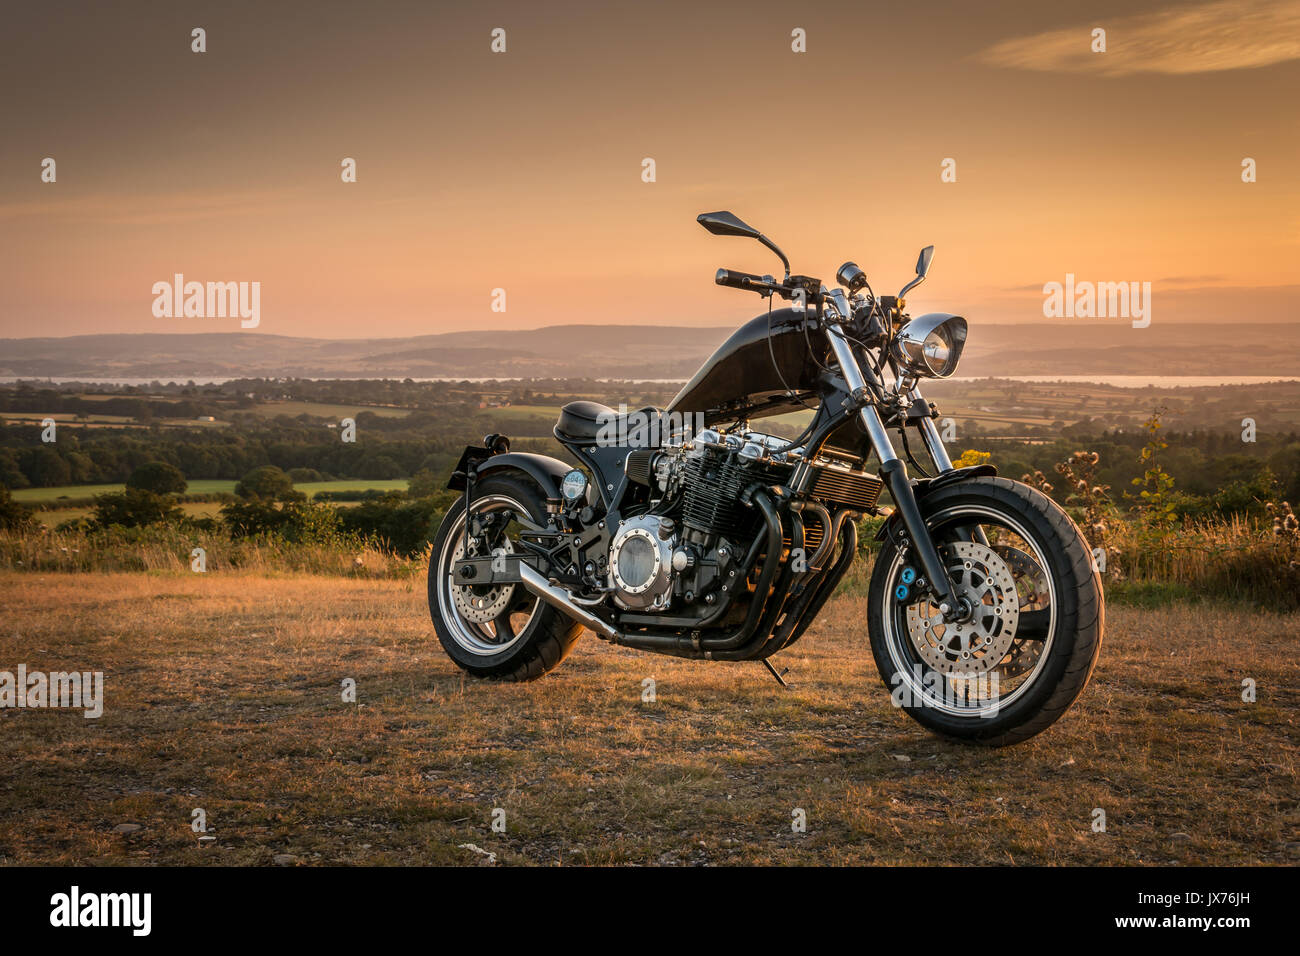 Custom made motorcycle parked during a quiet summer evening sunset. - Stock Image